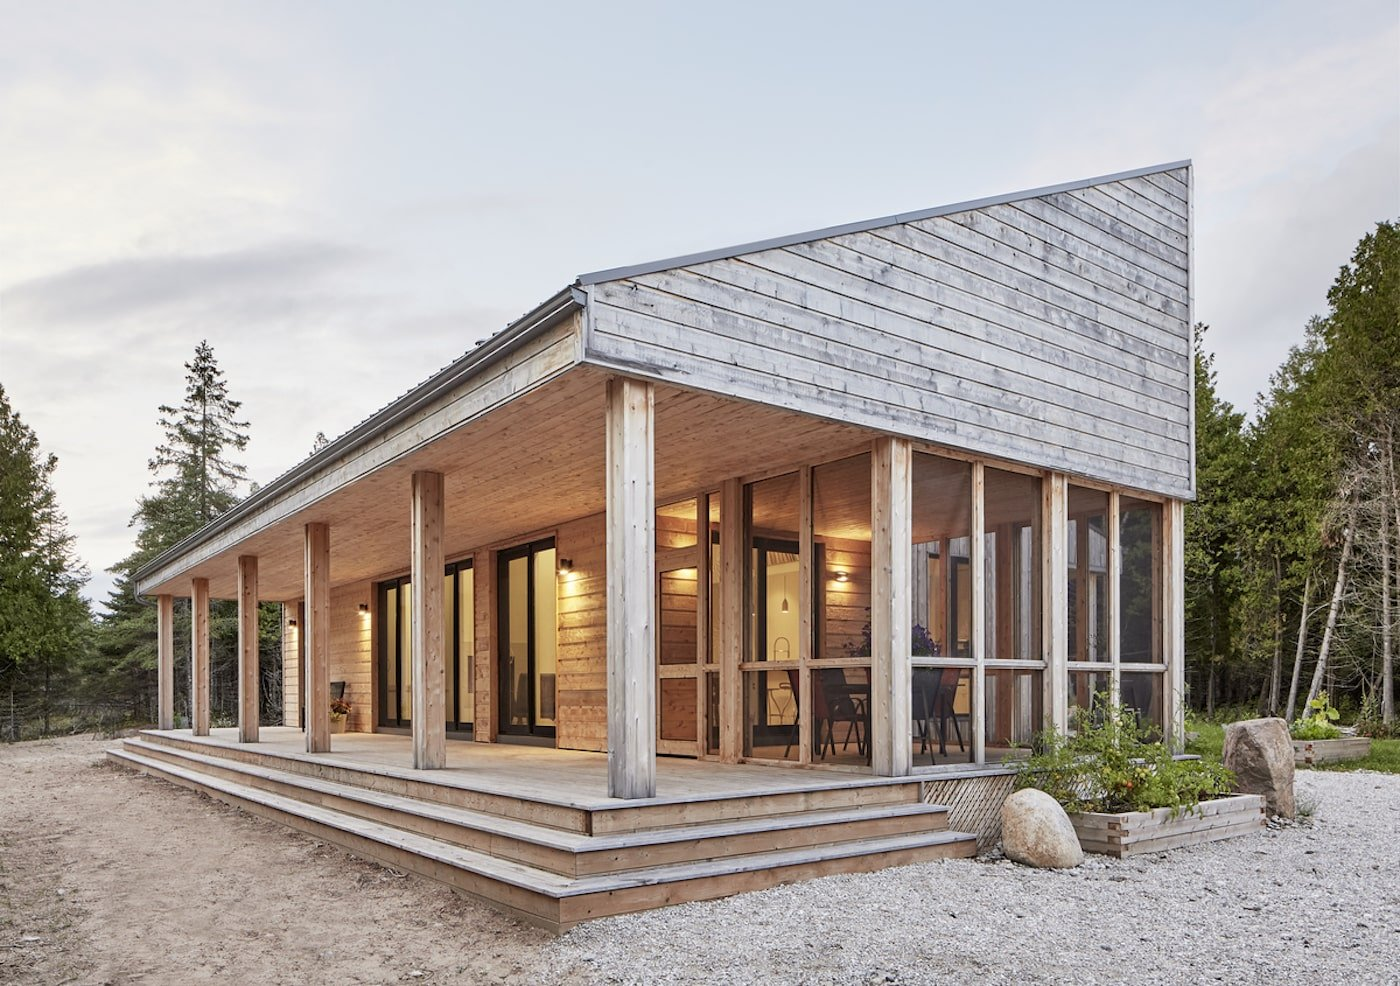 Island off-grid home with timber facade